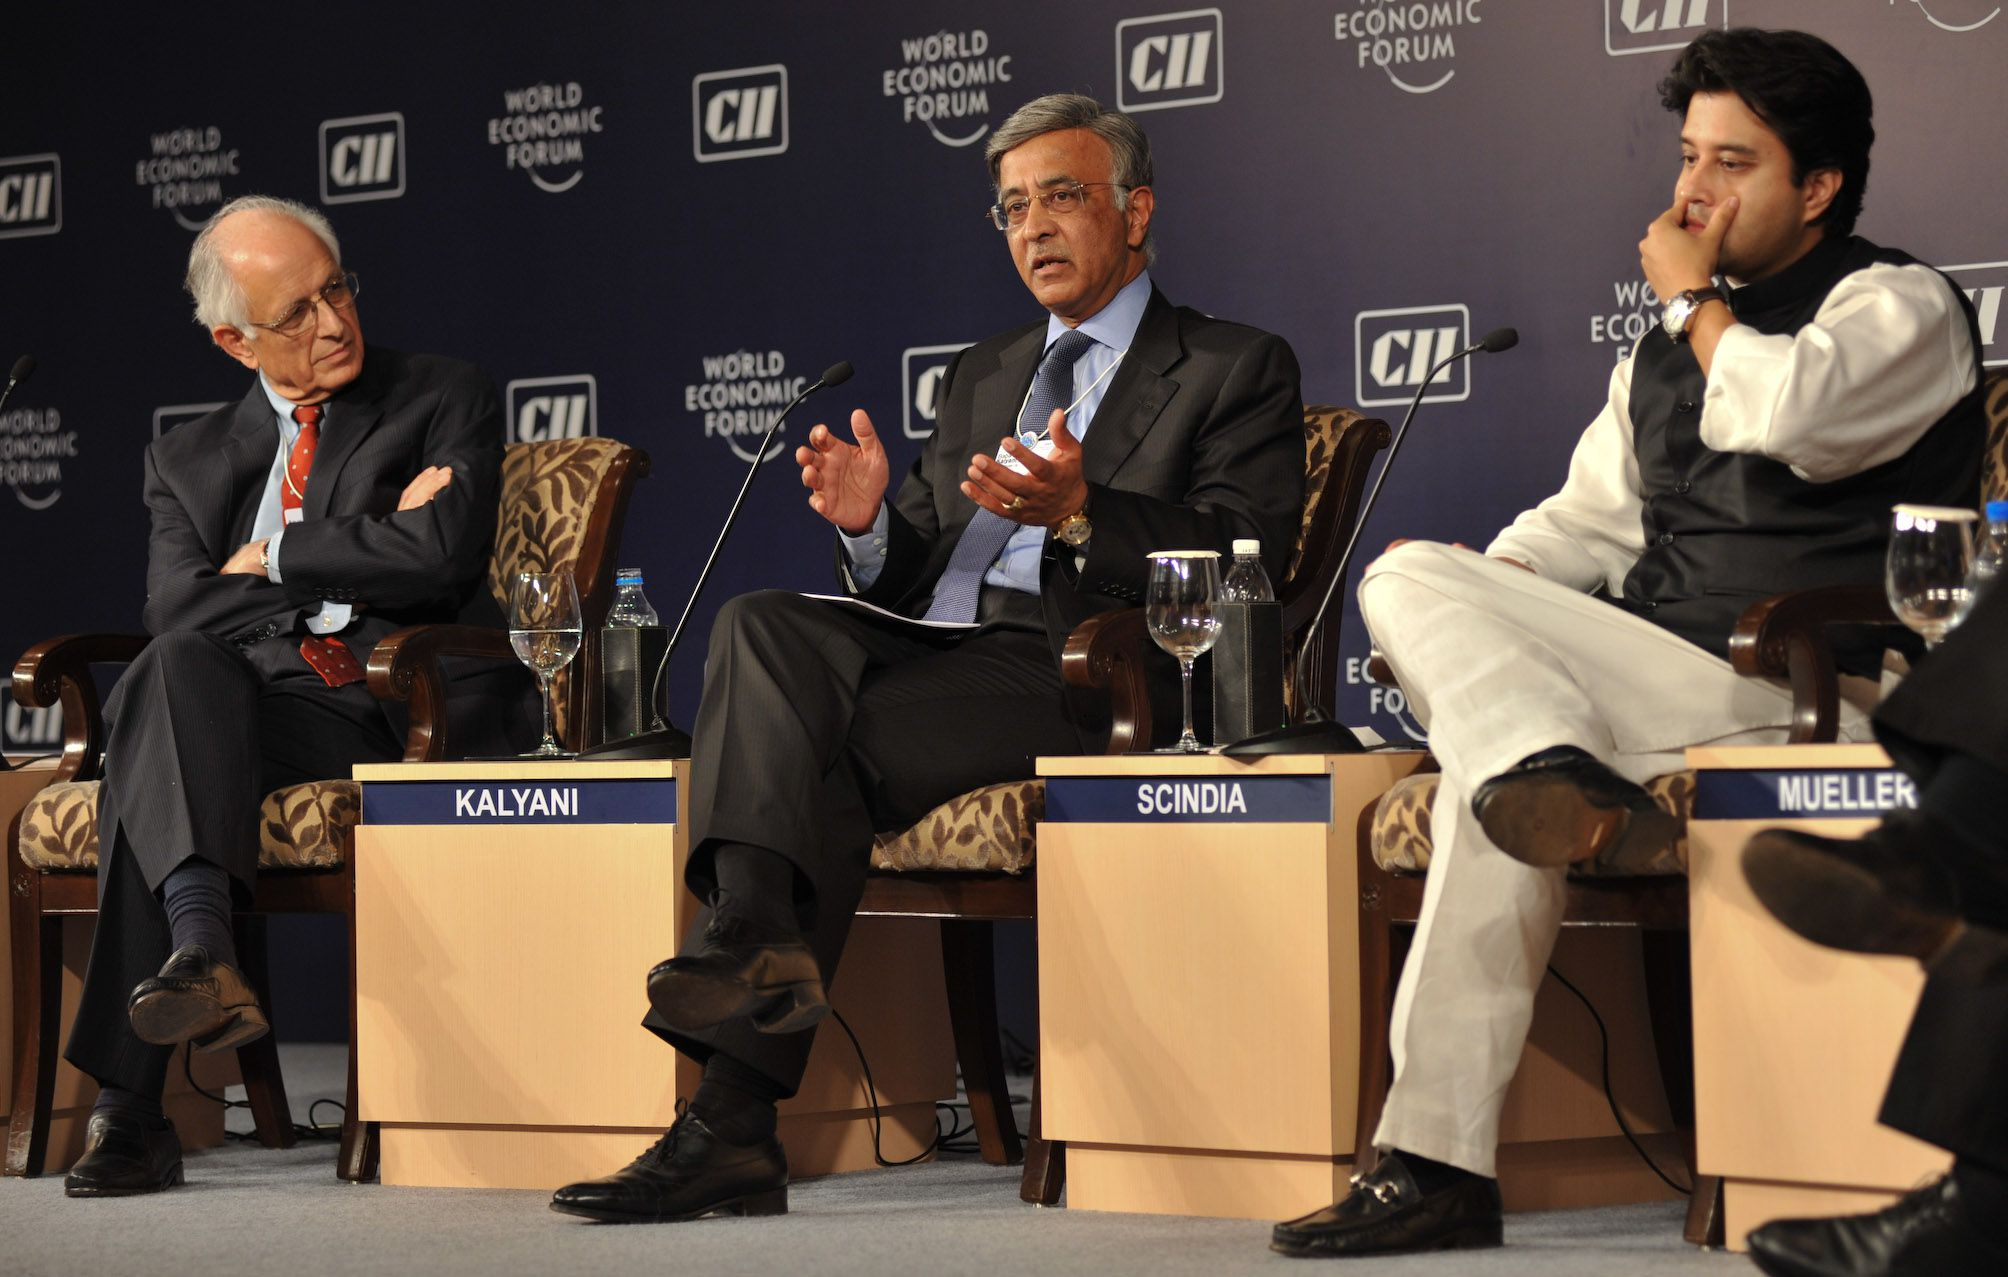 World Economic Forum's India Economic Summit, November 2009